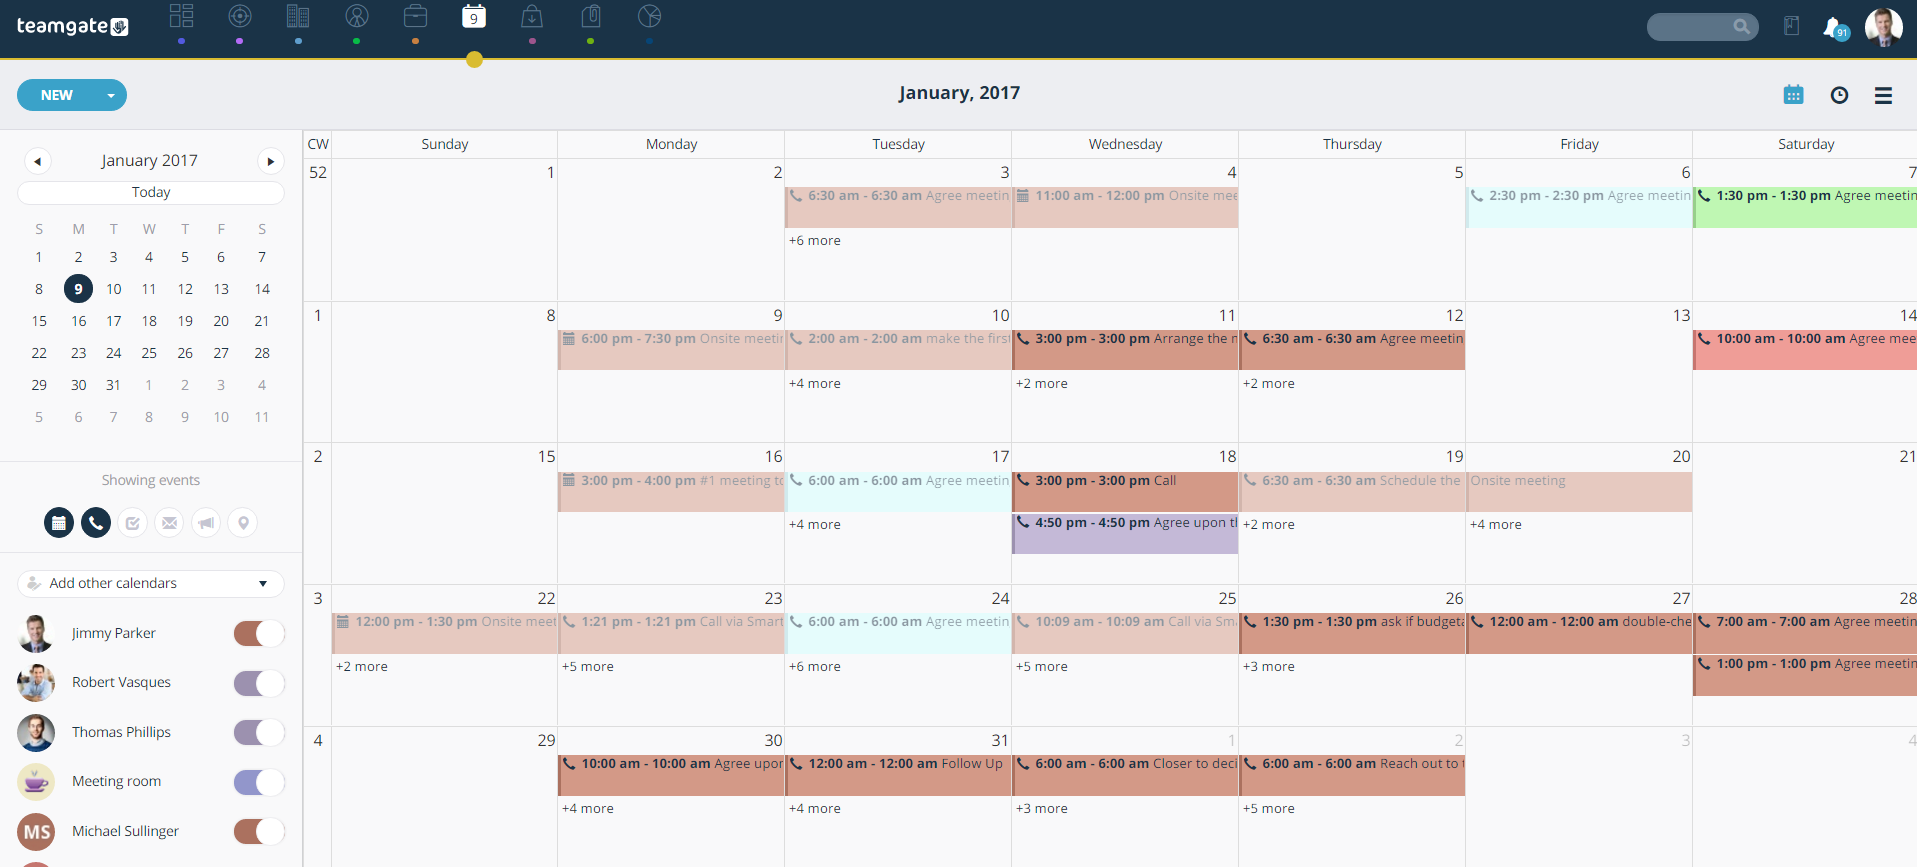 Organizer: Plan Activities, Log Calls, Schedule Meetings – Teamgate